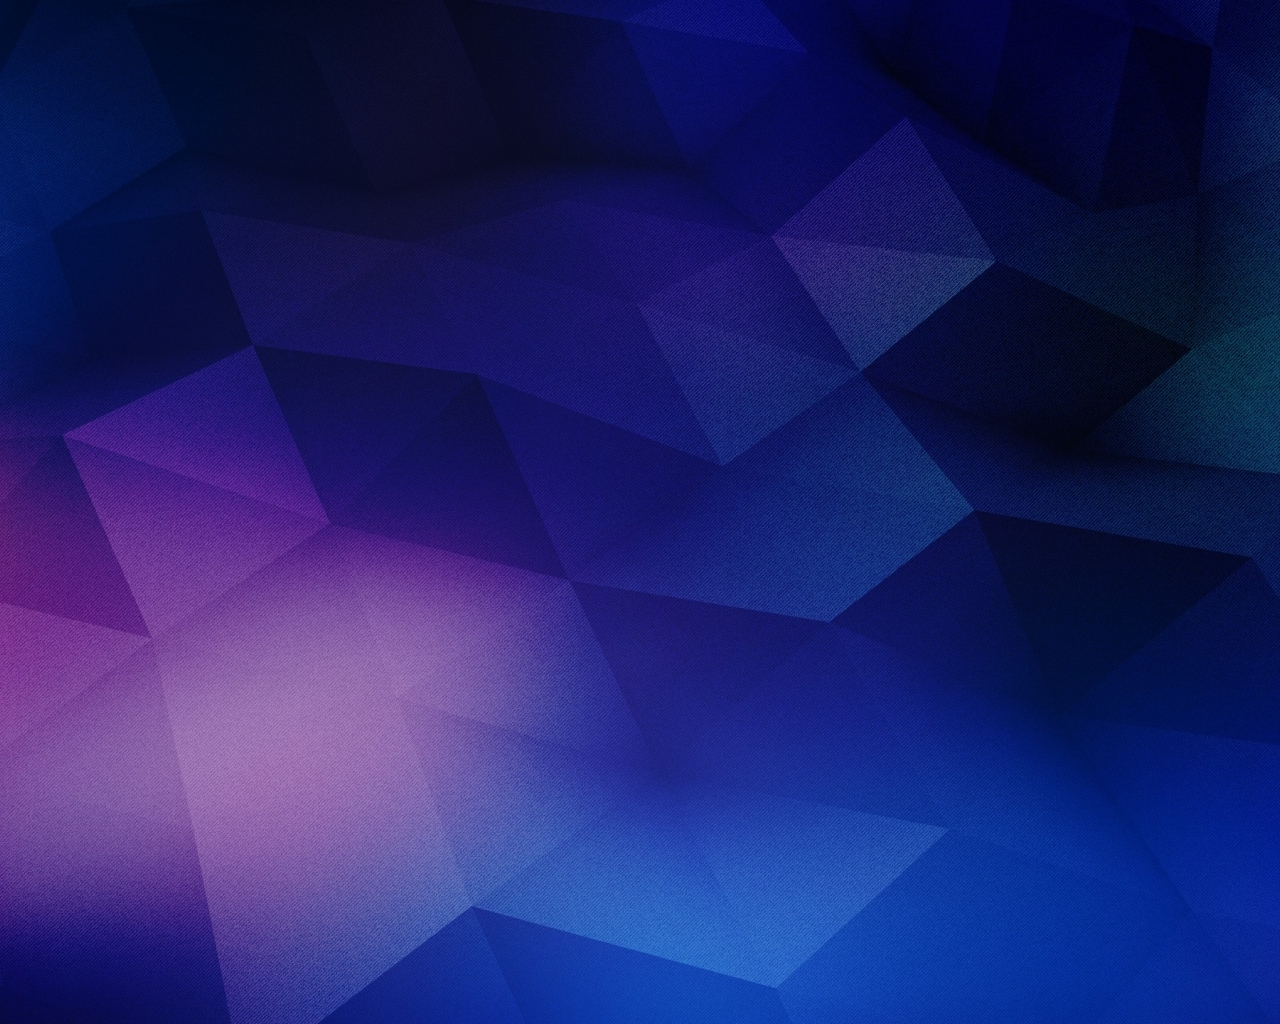 download Blue and purple geometry wallpaper in 3D Abstract 1280x1024